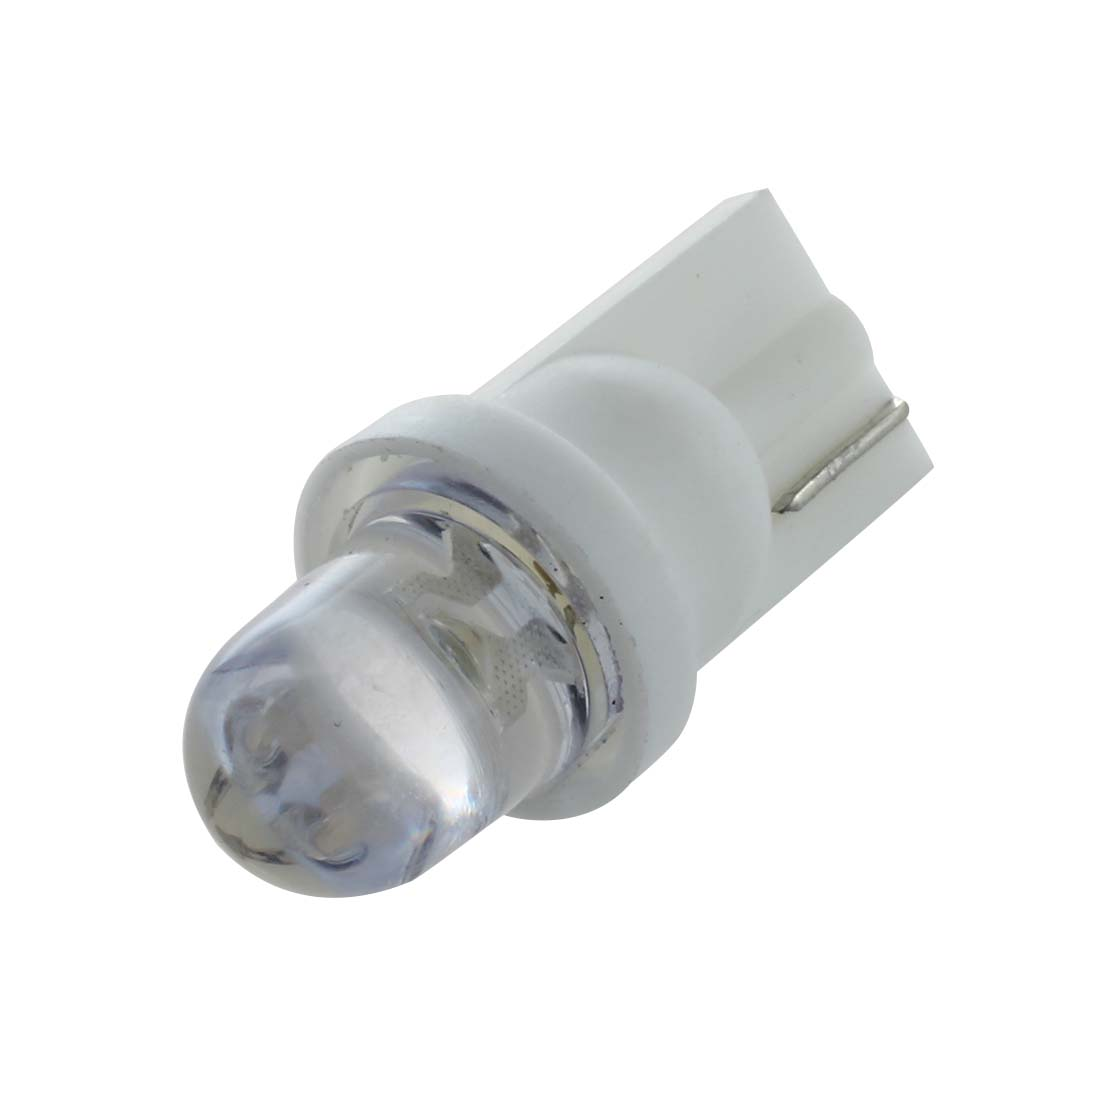 10x W5W LED nightlight bulb T10 2825 158 168 194 Xenon White Ceiling Effect